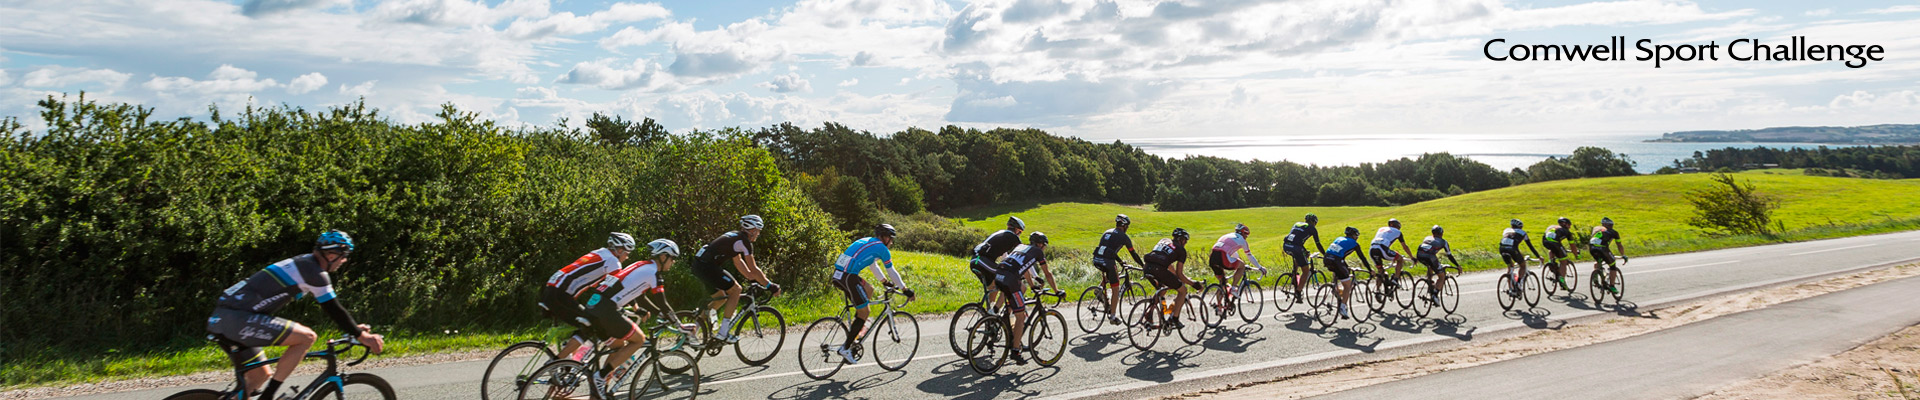 RUNDT OM ROLD 2016 powered by Comwell Hotels